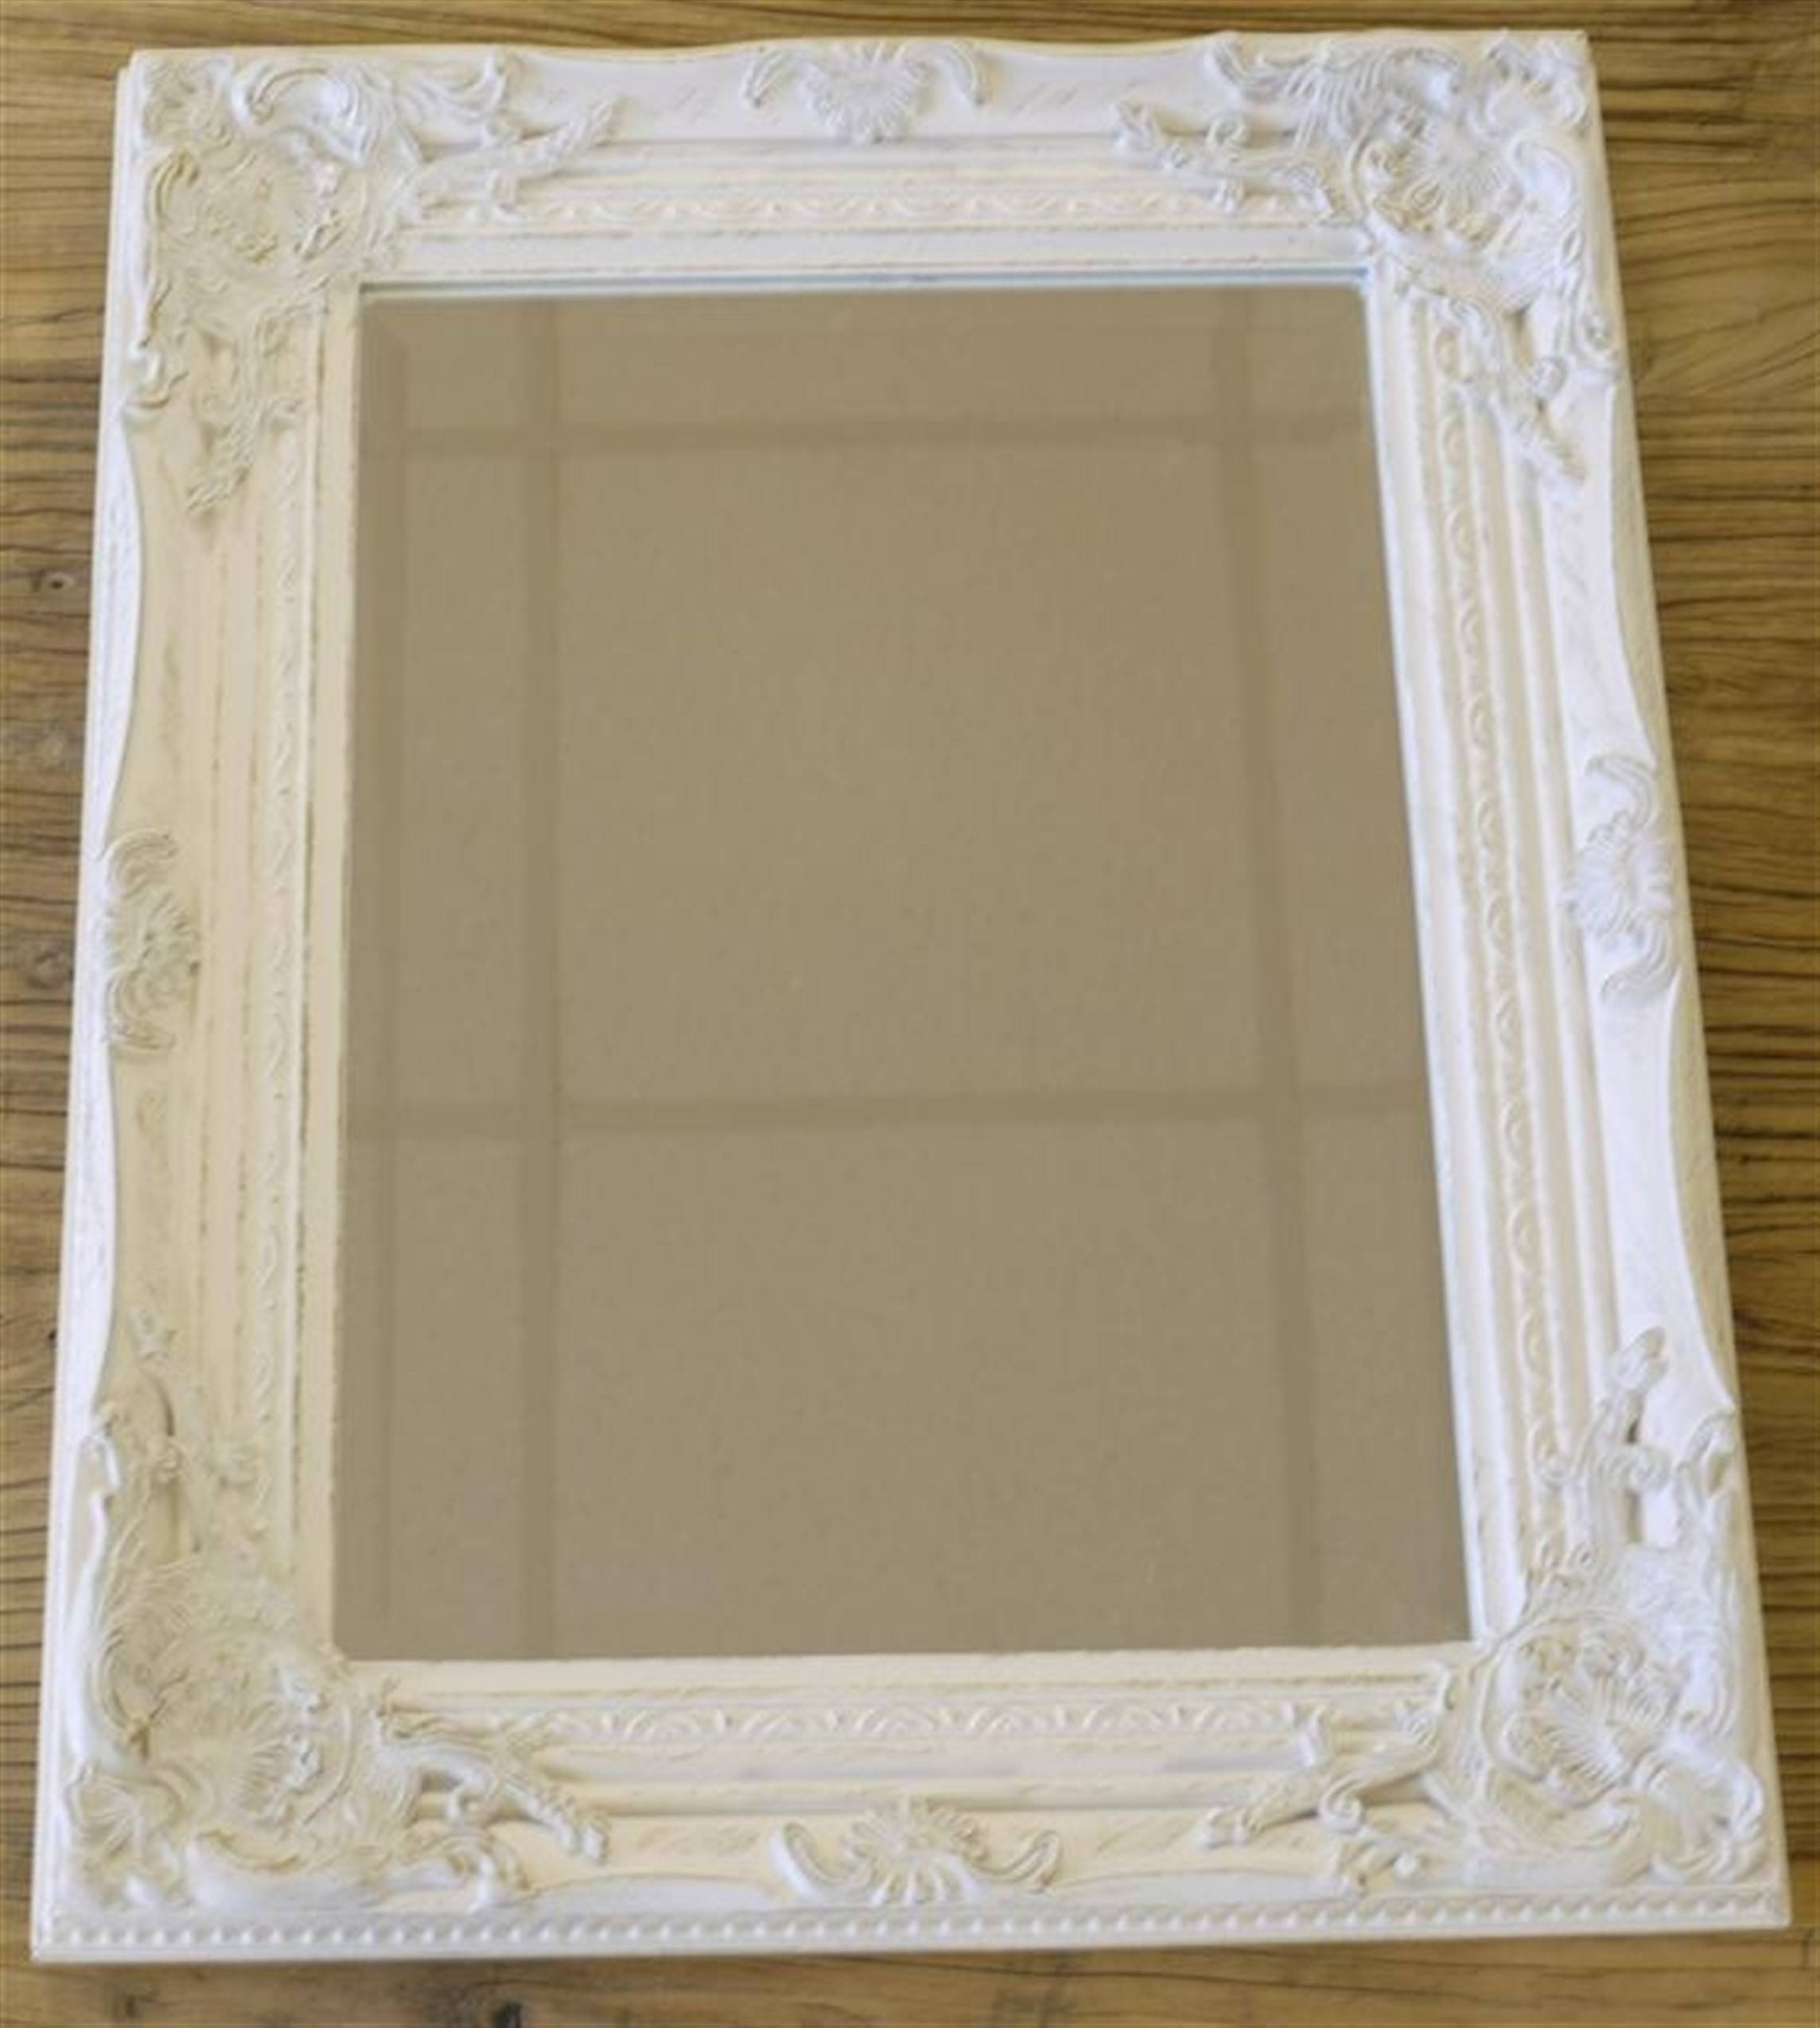 Silver Gilded Or White Shabby Chic Bathroom Hall Wall Small Mirror Within Silver Gilded Mirrors (View 14 of 15)